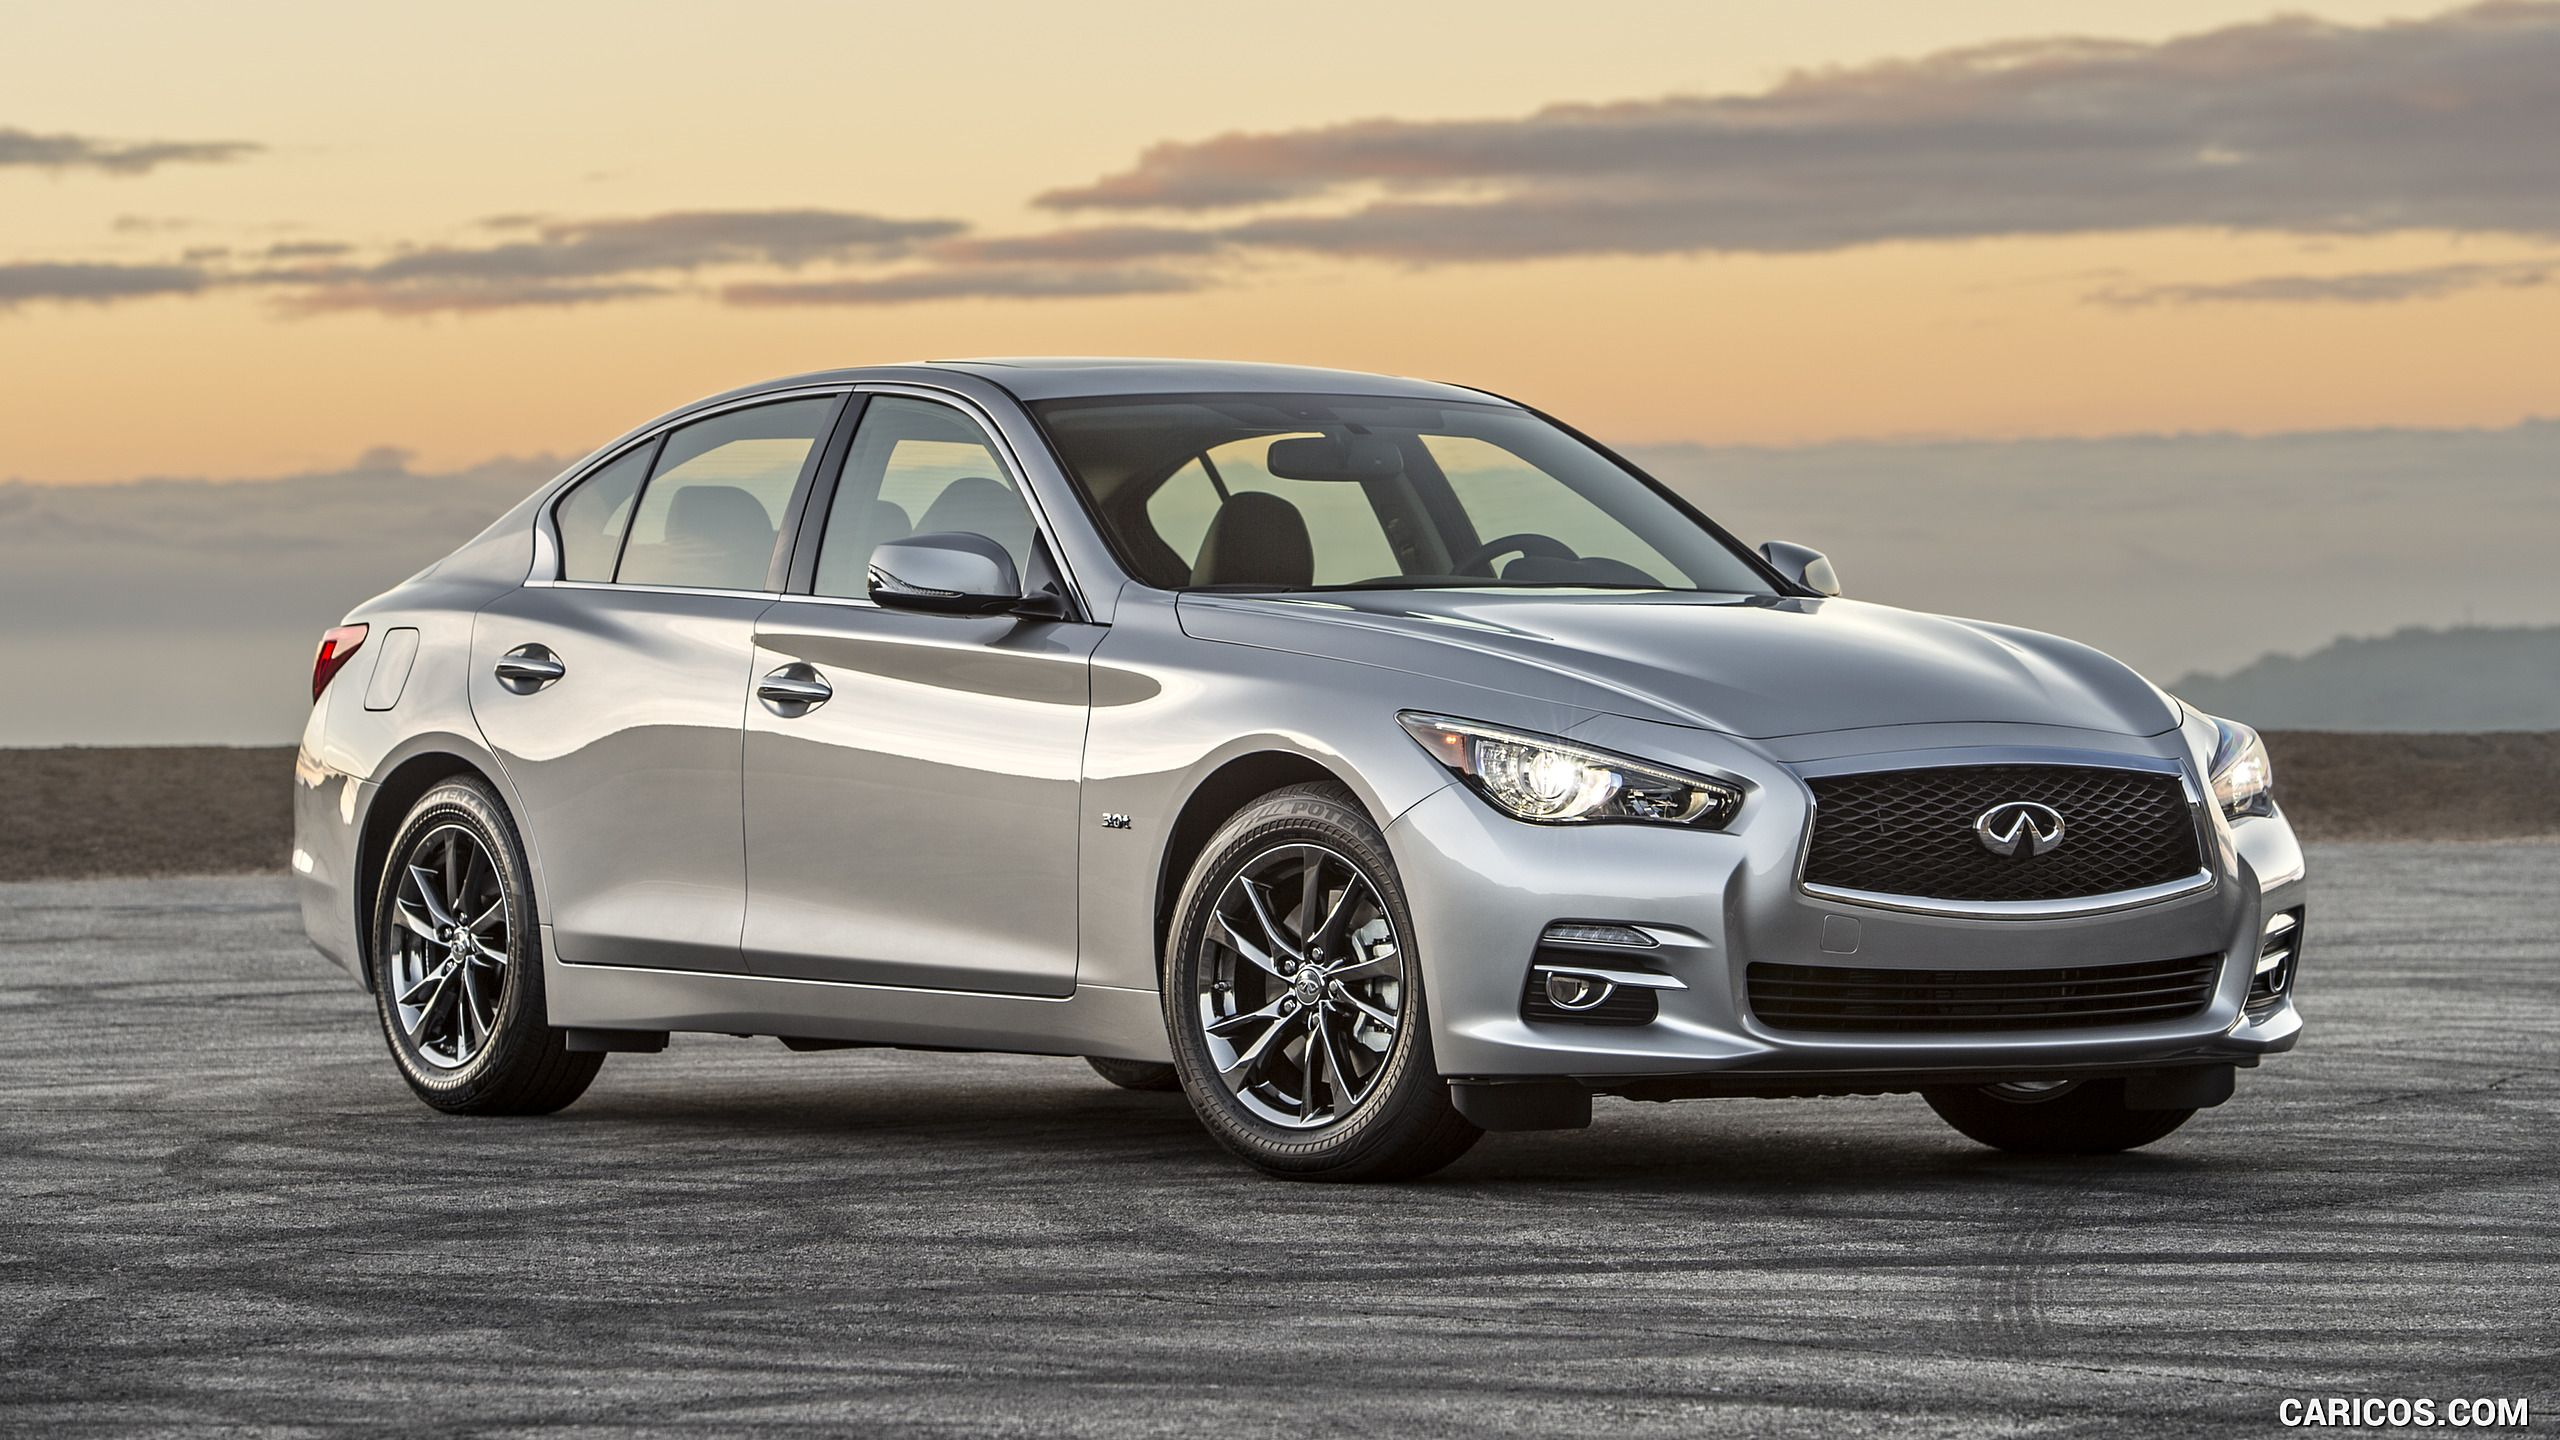 Infiniti Q T Signature Edition Wallpaper Cars K - Infiniti q50 invoice price